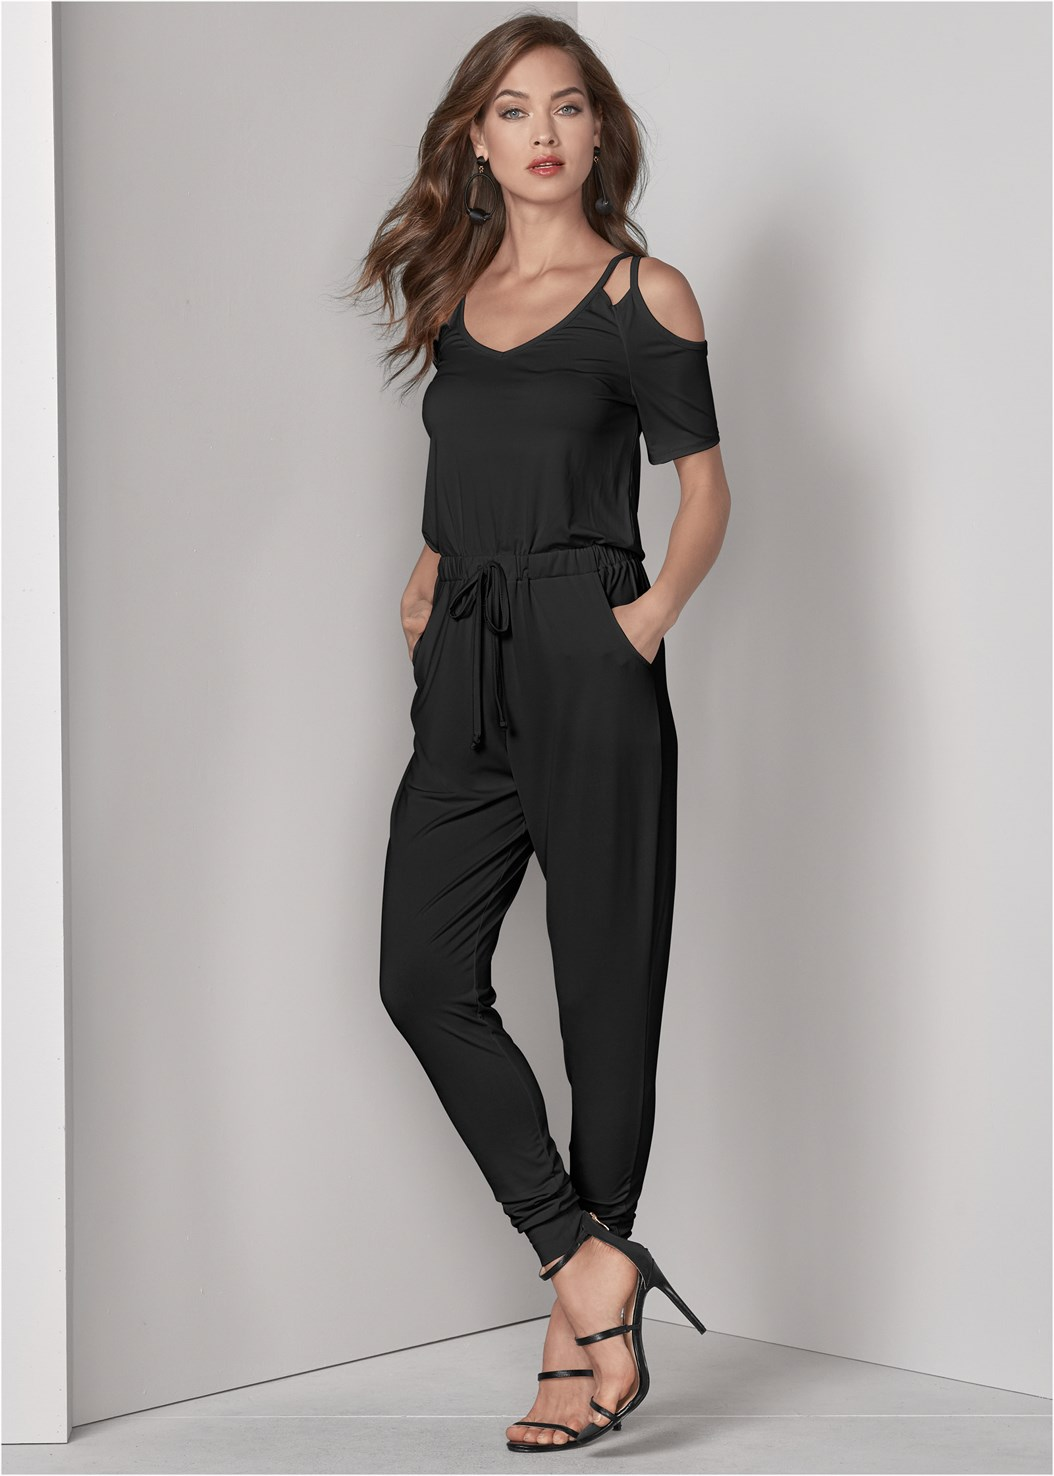 Cold Shoulder Jumpsuit,Natural Beauty Lace Bandeau,High Heel Strappy Sandals,Block Heels,Bauble Hoop Earrings,Quilted Belt Bag